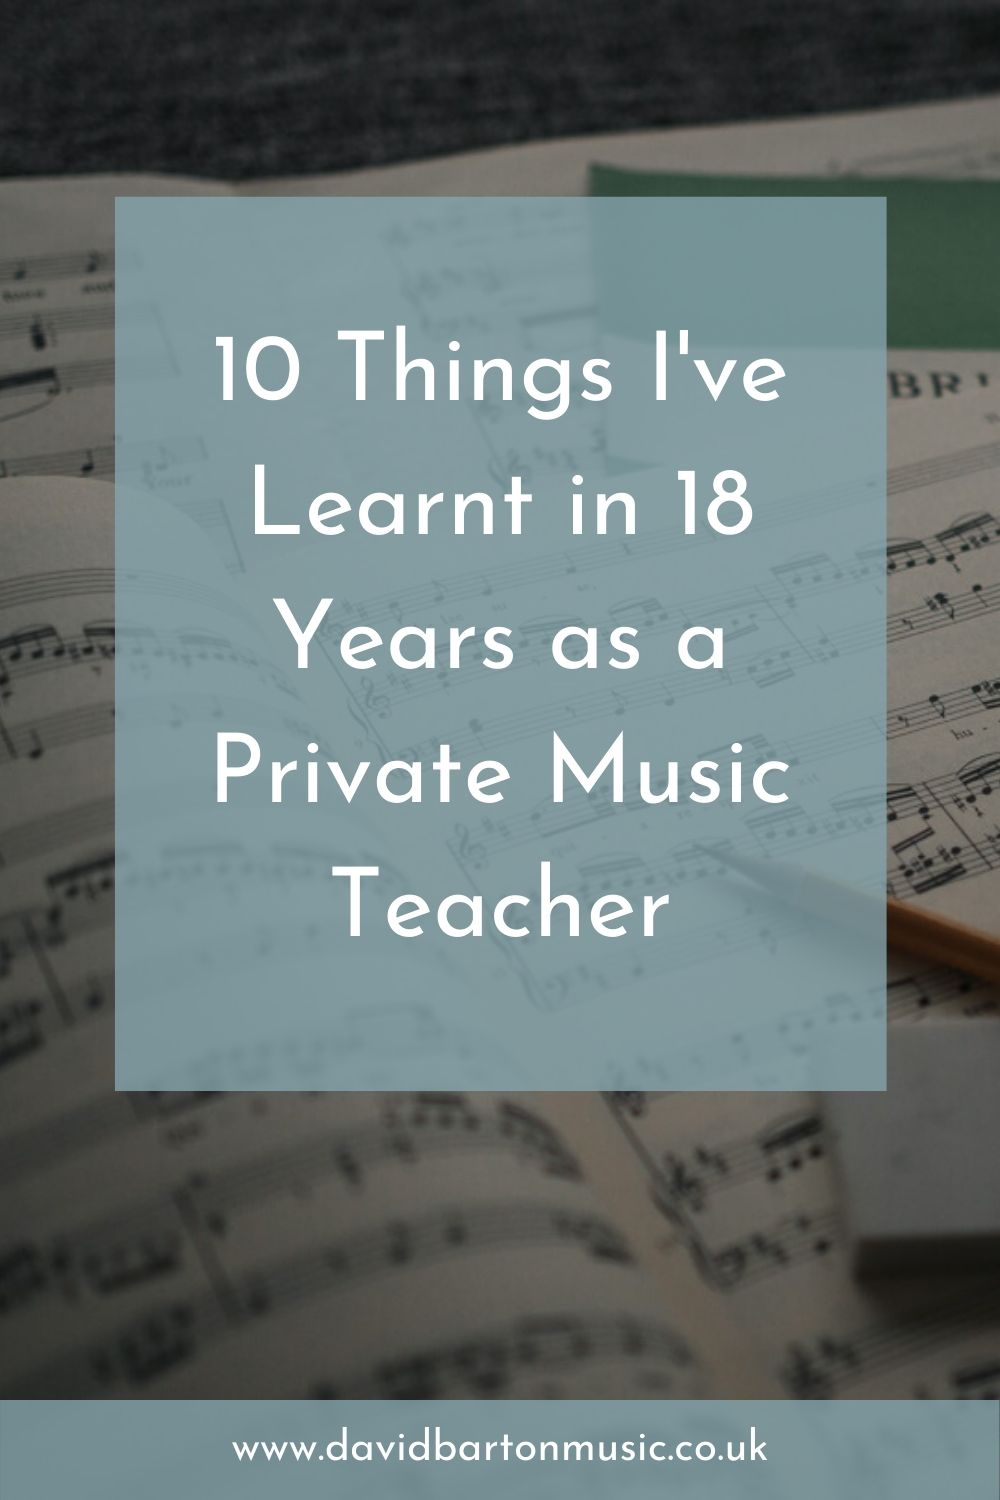 10 Things I've Learnt in 18 Years as a Private Music Teacher. Pinterest graphic.